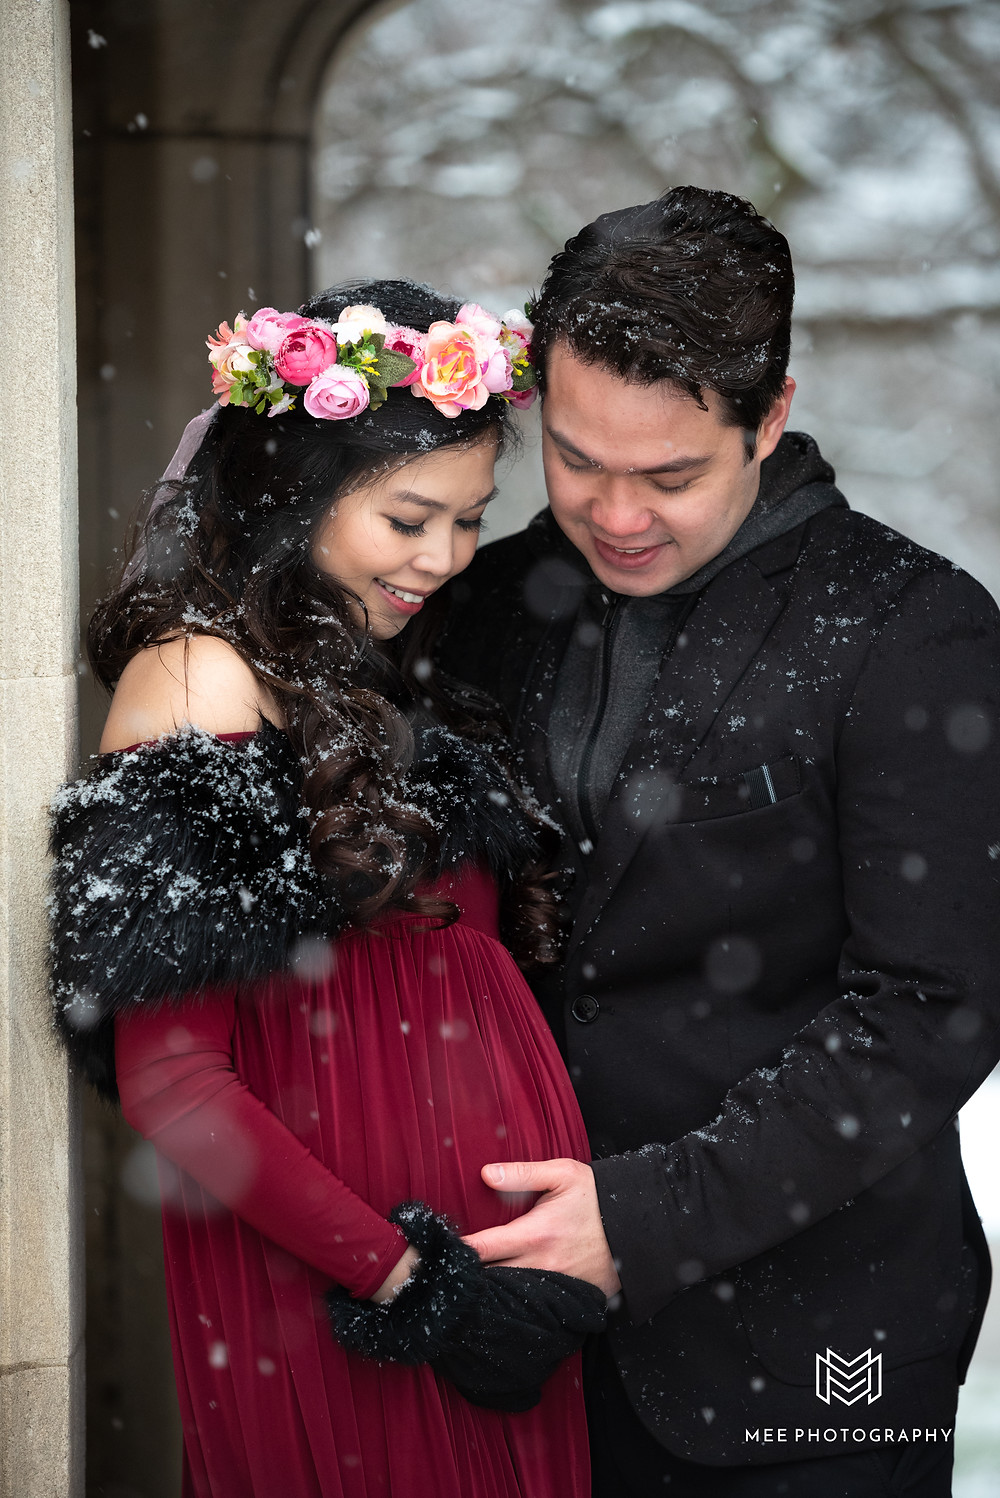 Hartwood Acres winter maternity photos with snow falling